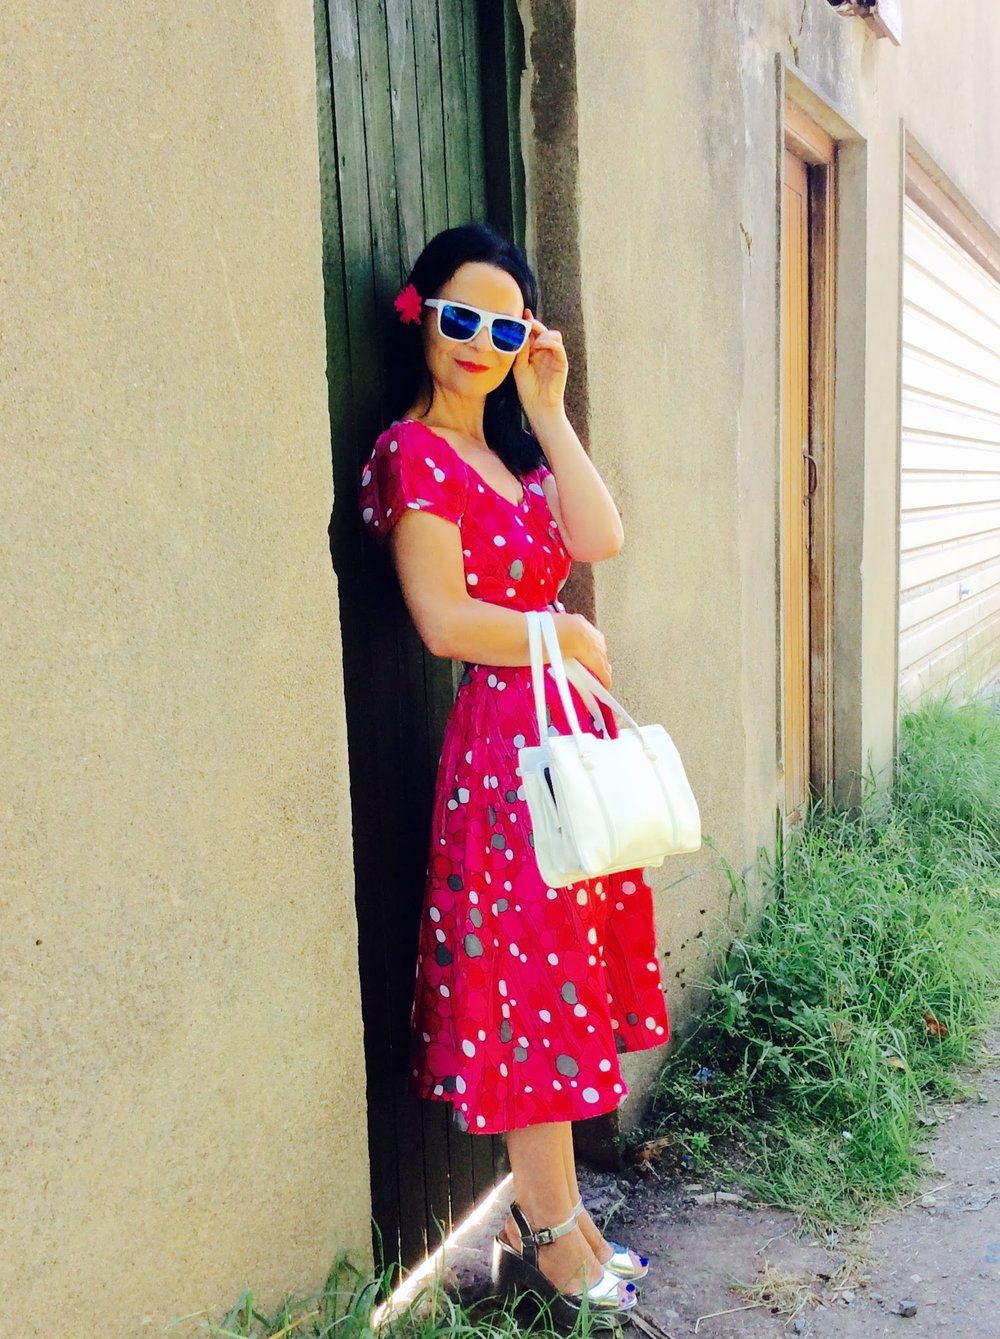 This Tea Time look is completed by shades from Penneys/Primark and a vintage 1950's bag